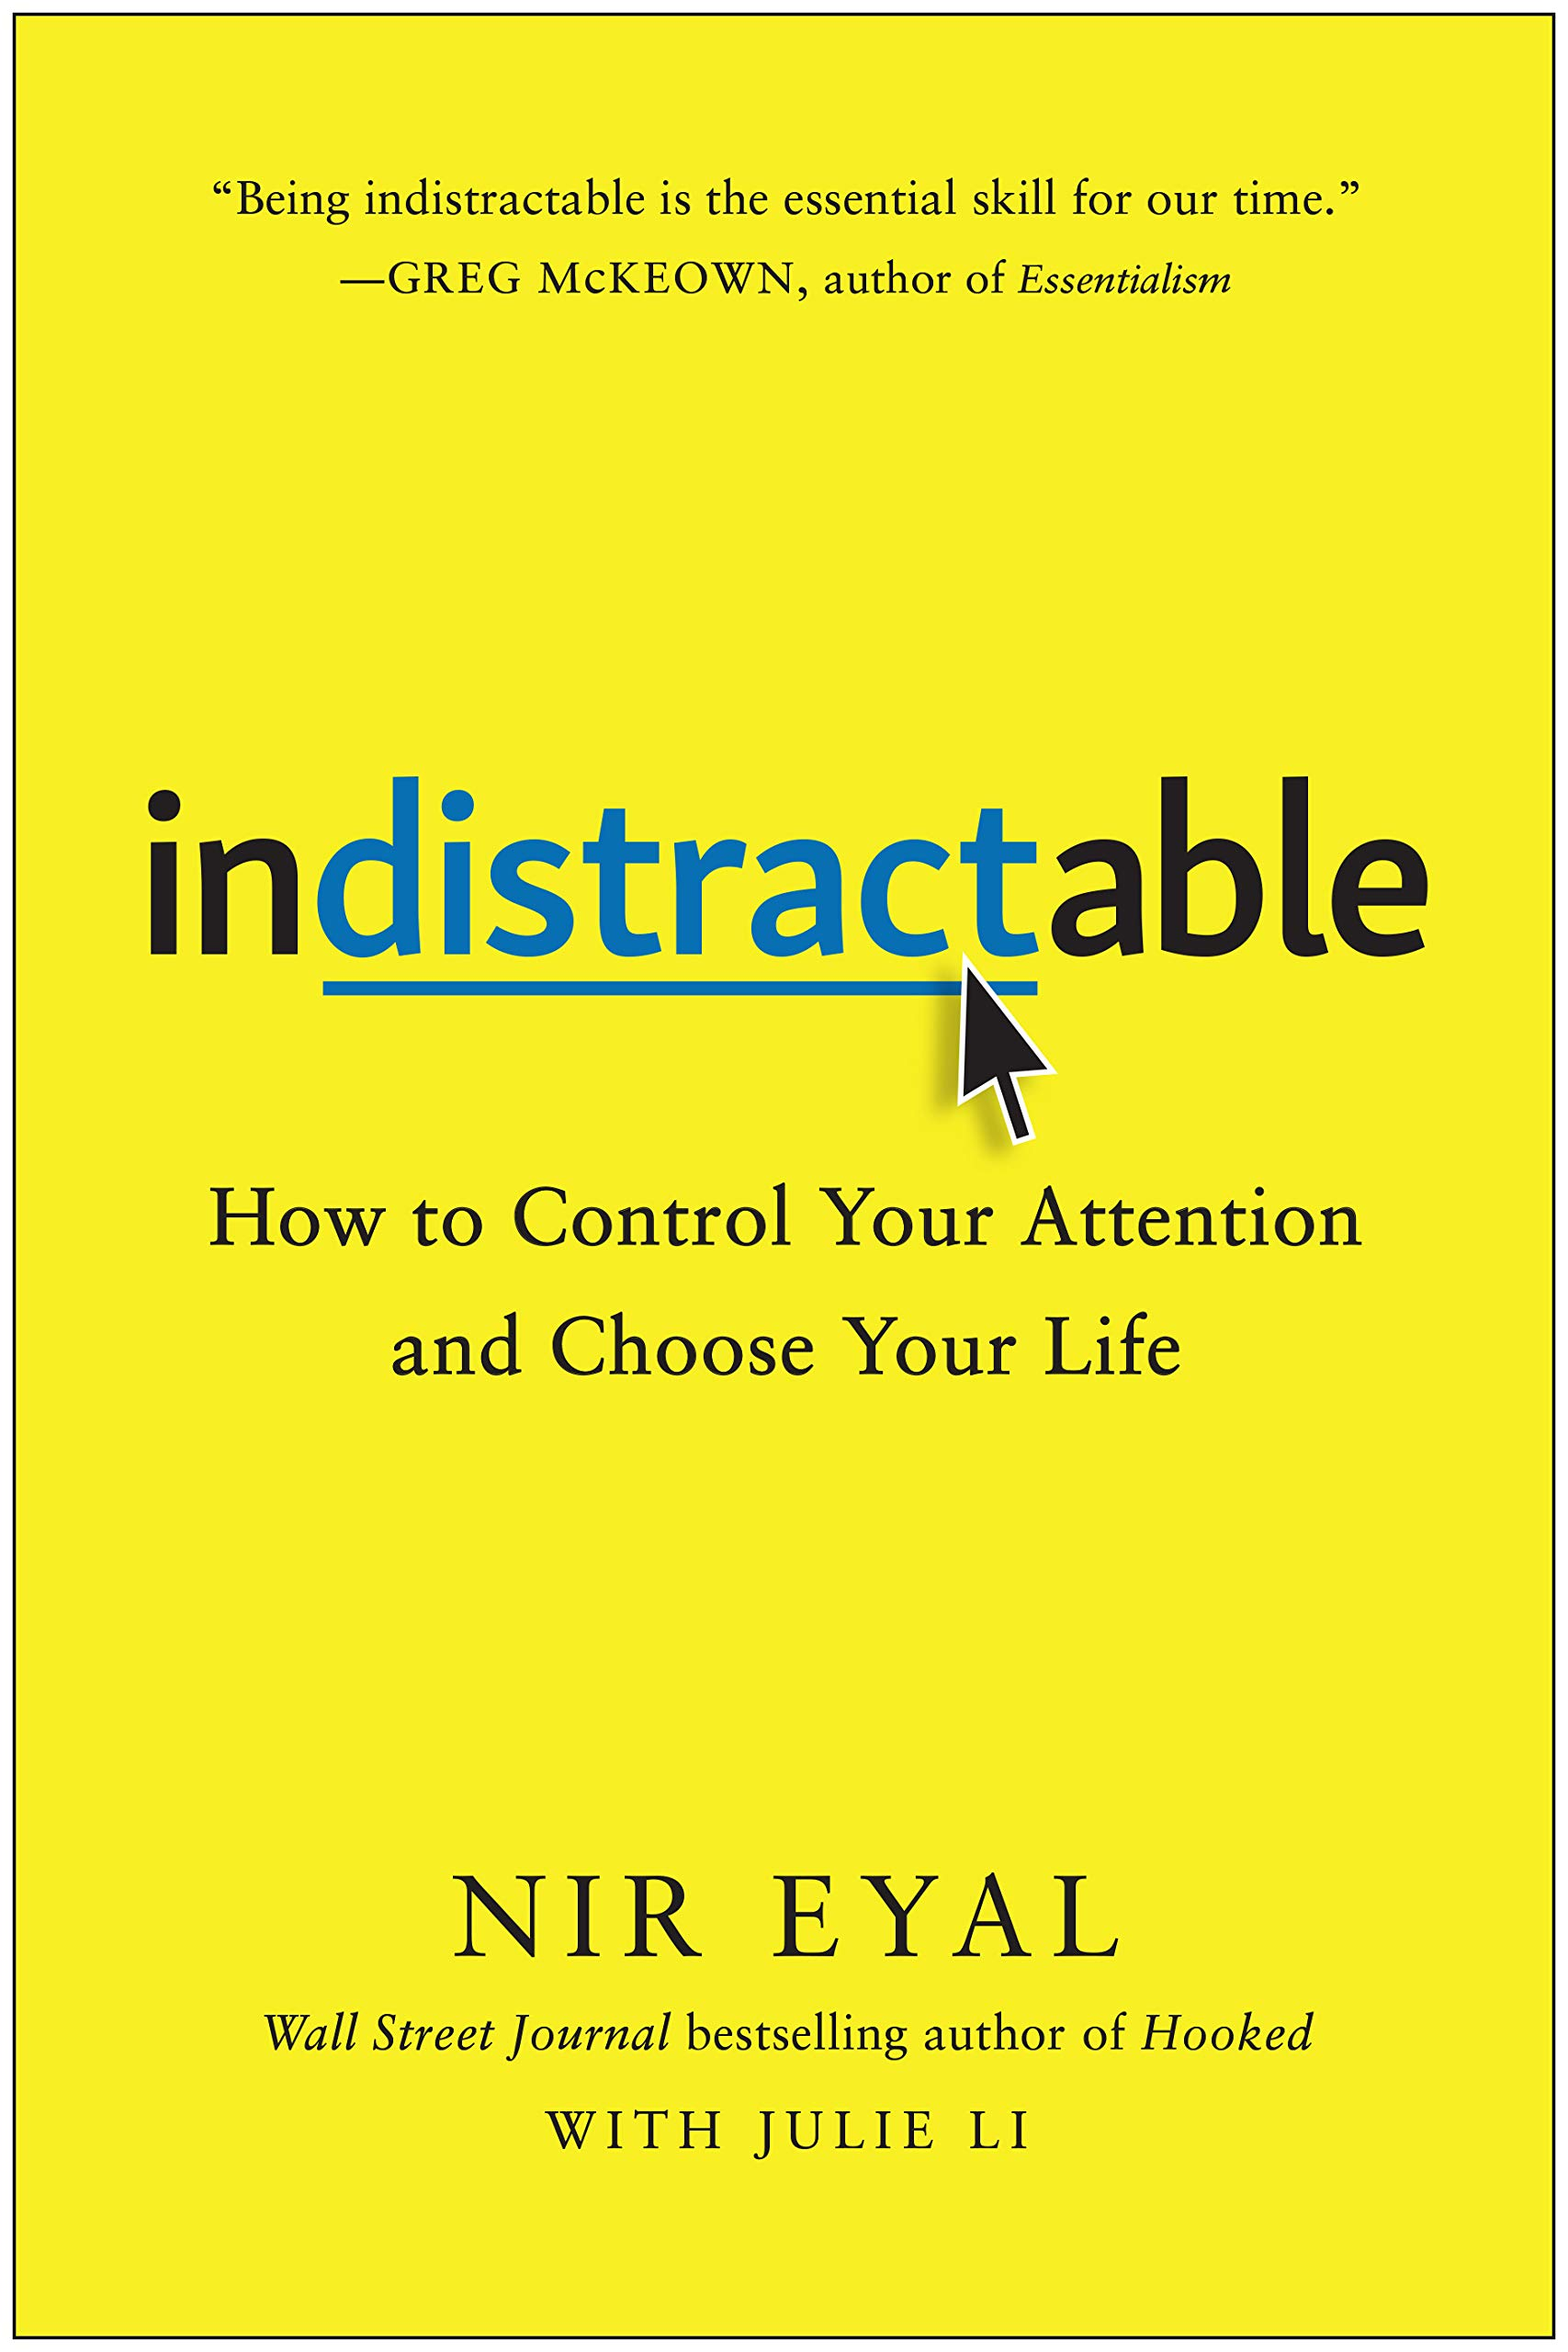 """Indistractable"" book cover by Nir Eyal."